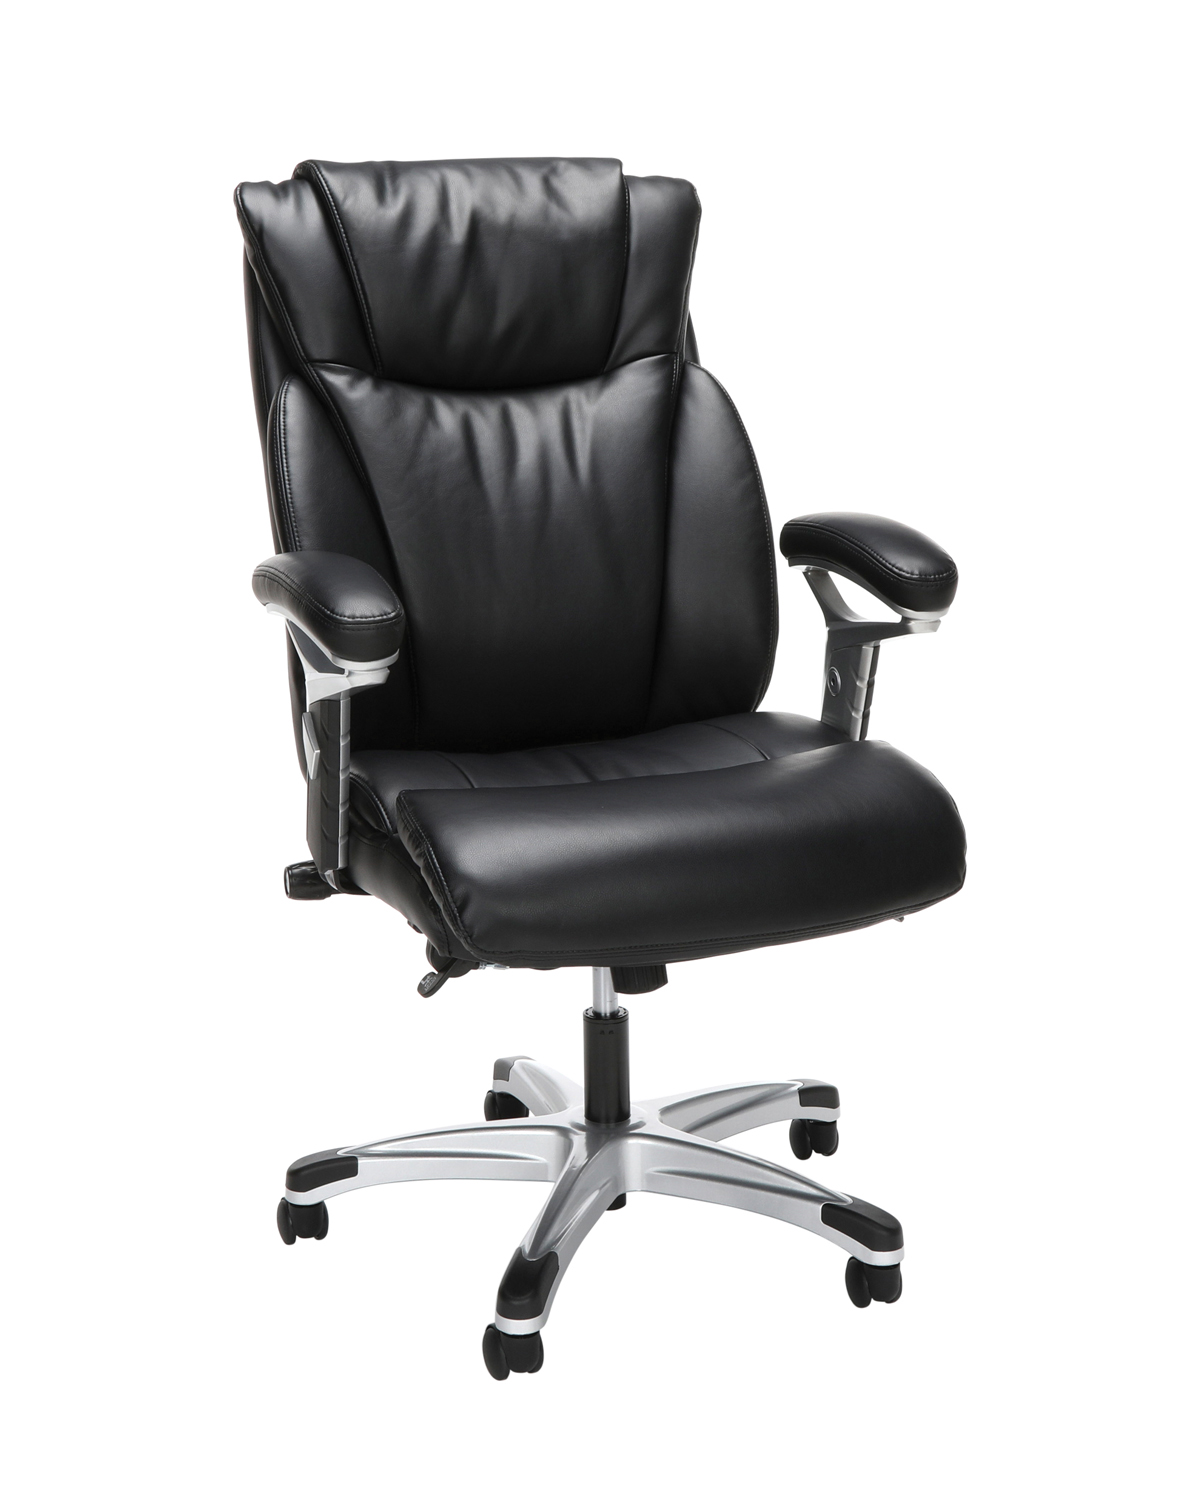 Model ESS-6020 Essentials by OFM Executive Office Chair with Arms - Black/Silver